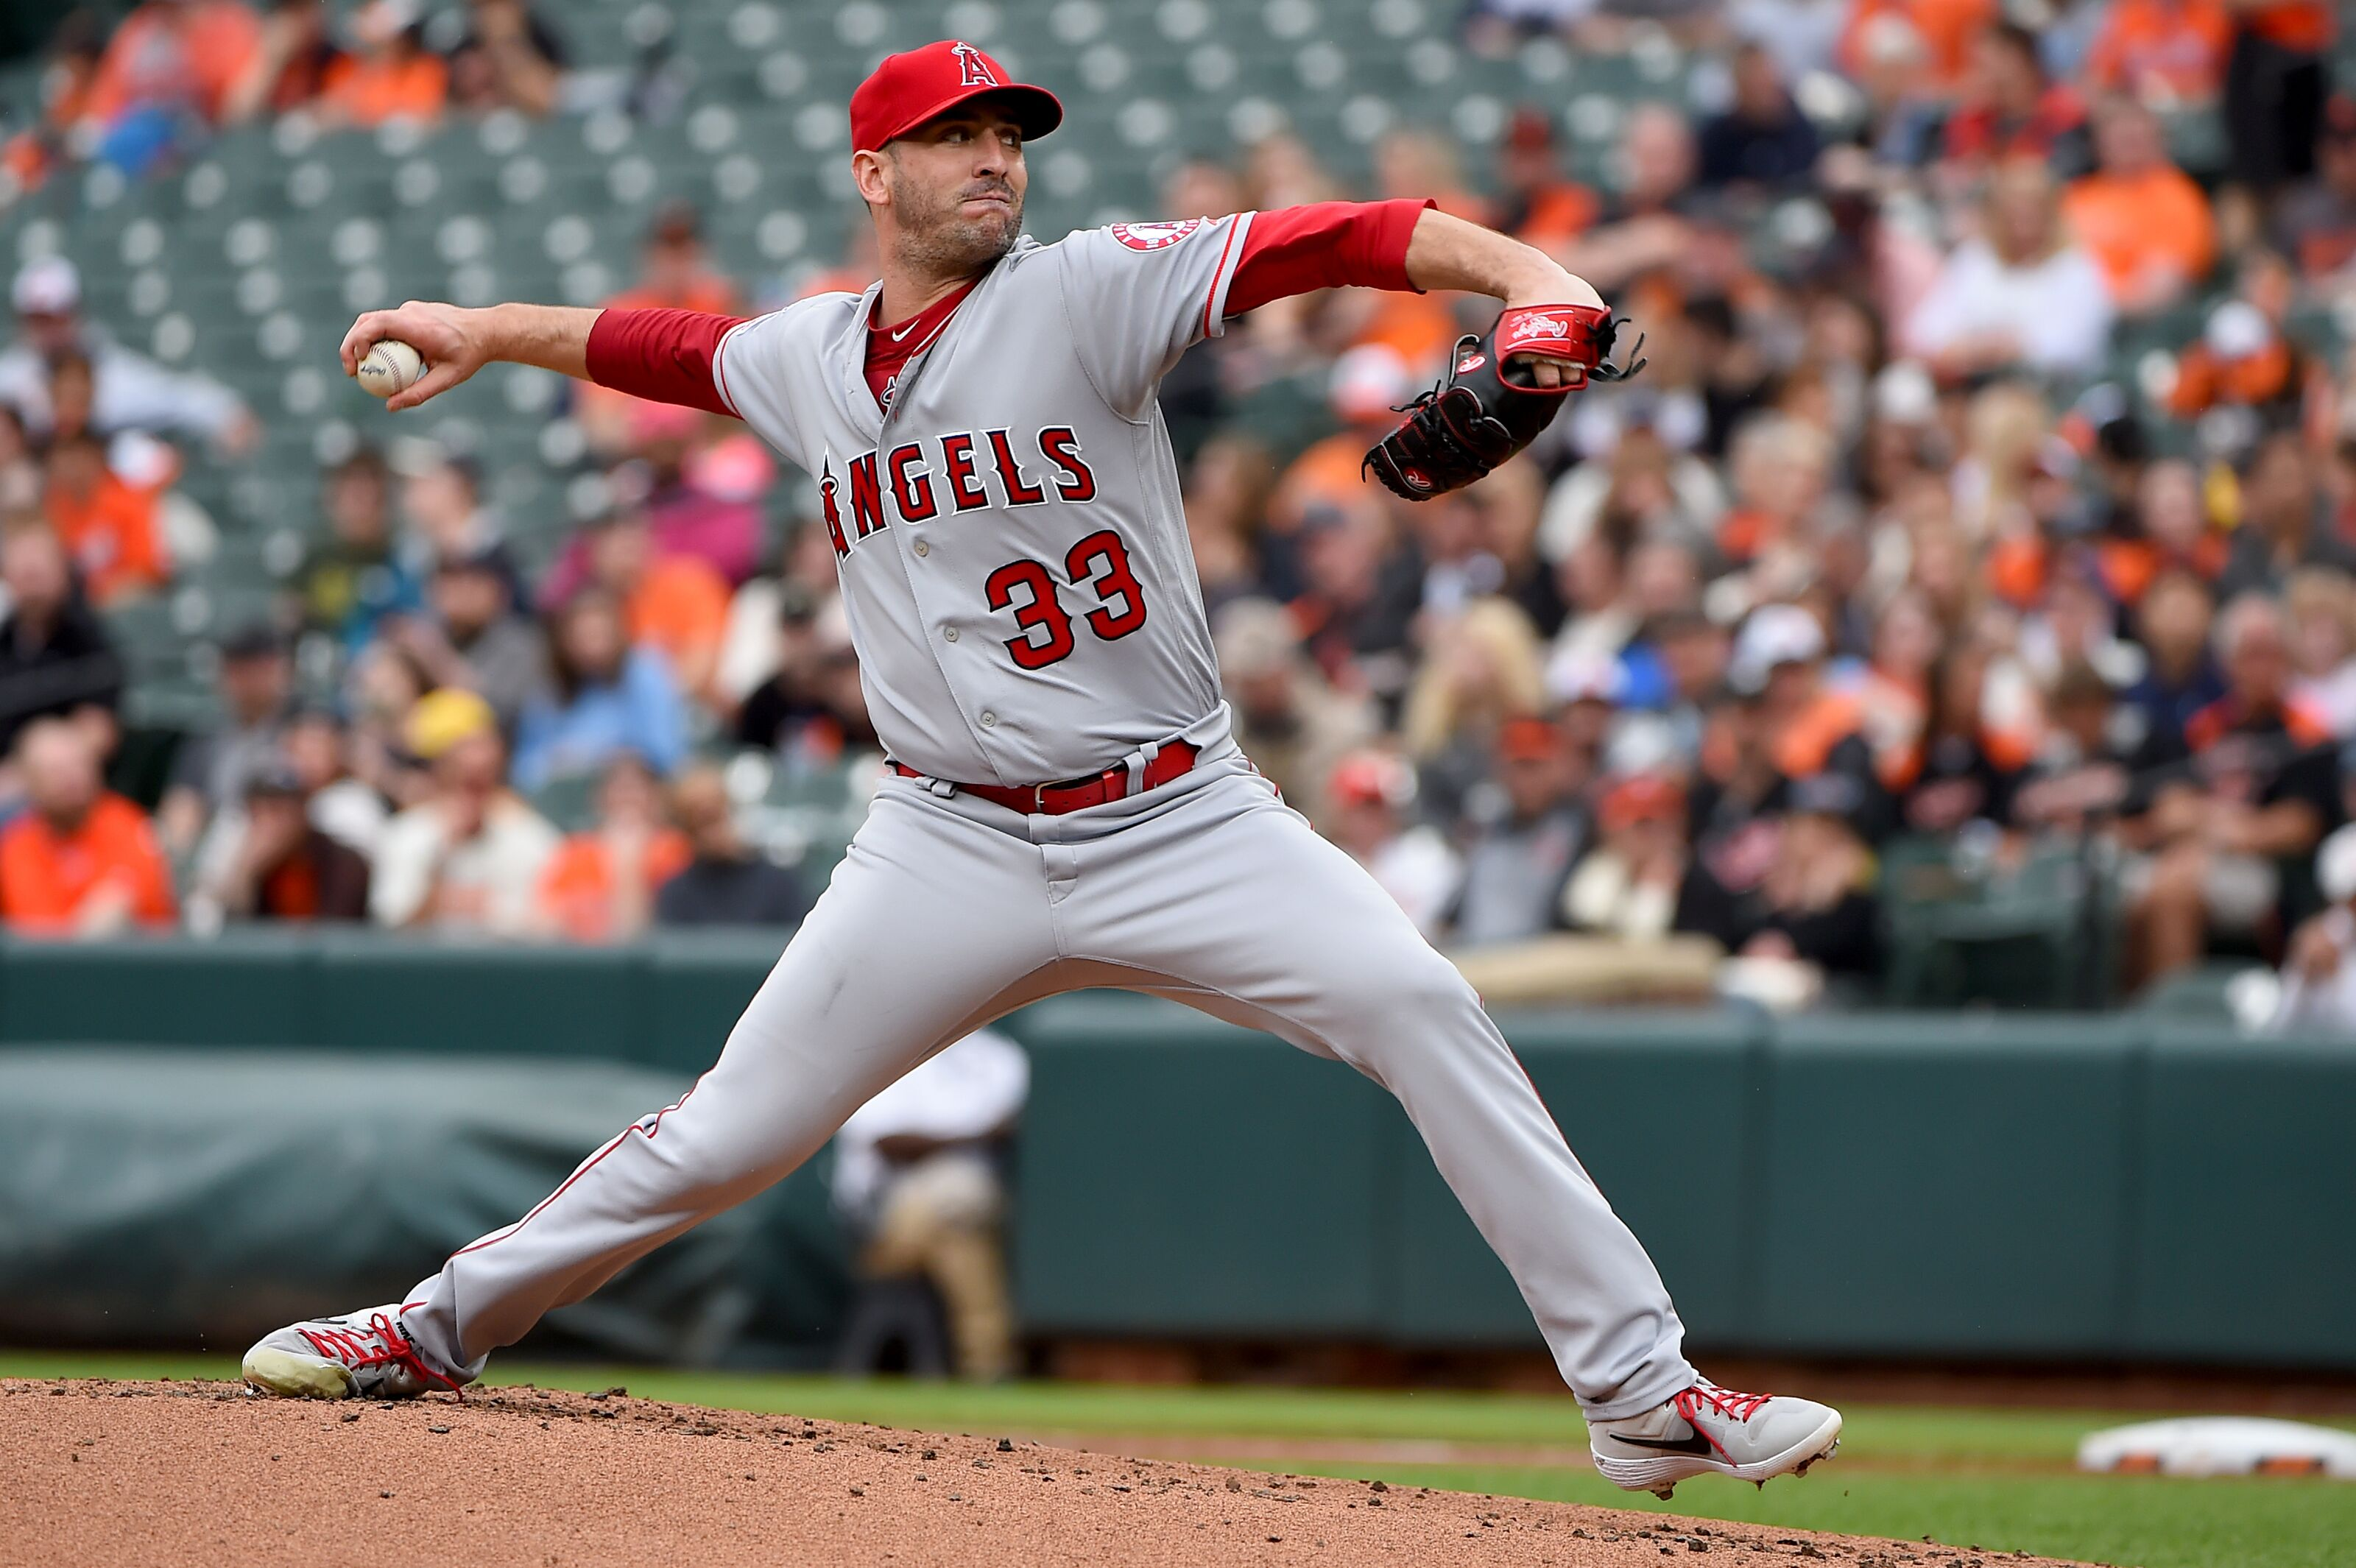 Los Angeles Angels: Offseason mistakes are becoming evident